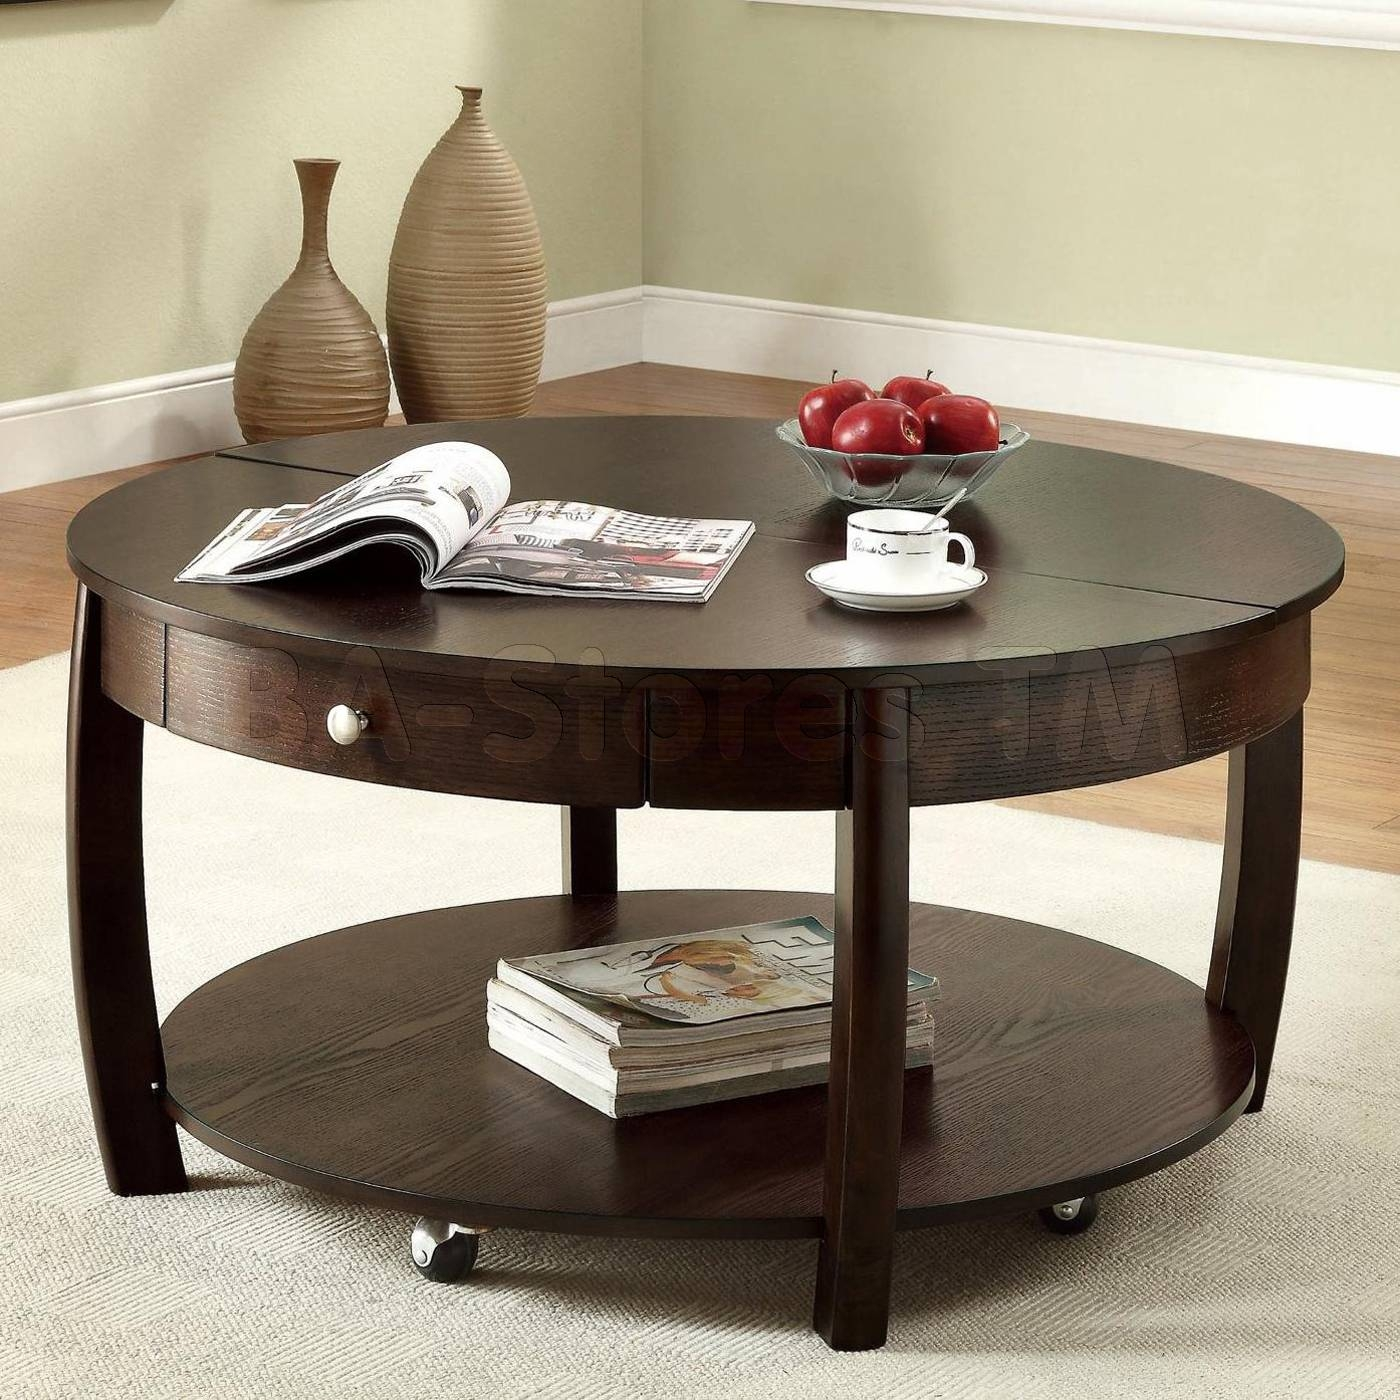 Artistic Small Round Coffee Table   Home Design Inside Rounded Corner Coffee  Tables (Image 4